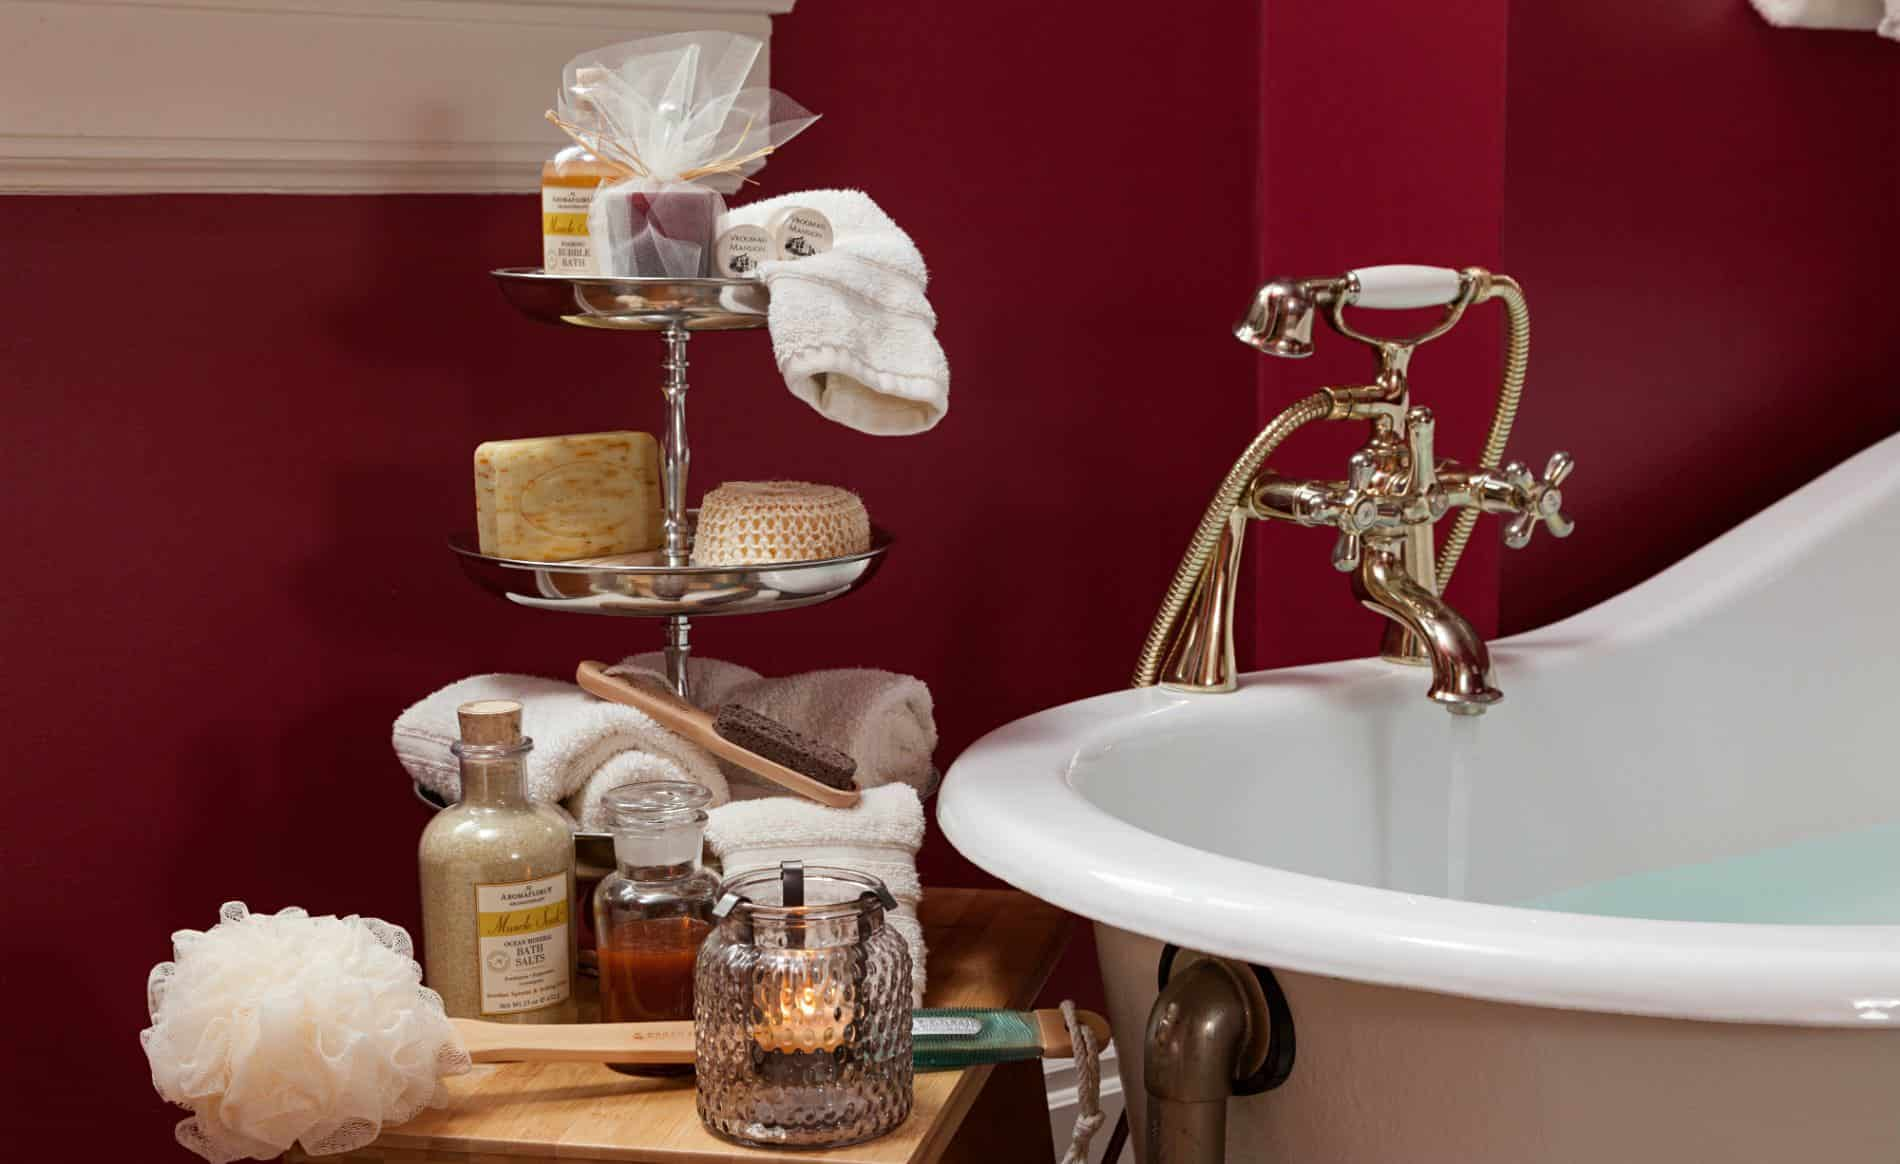 Close-up view of white clawfoot tub in red room and a wood stool topped with white towels and various toiletries